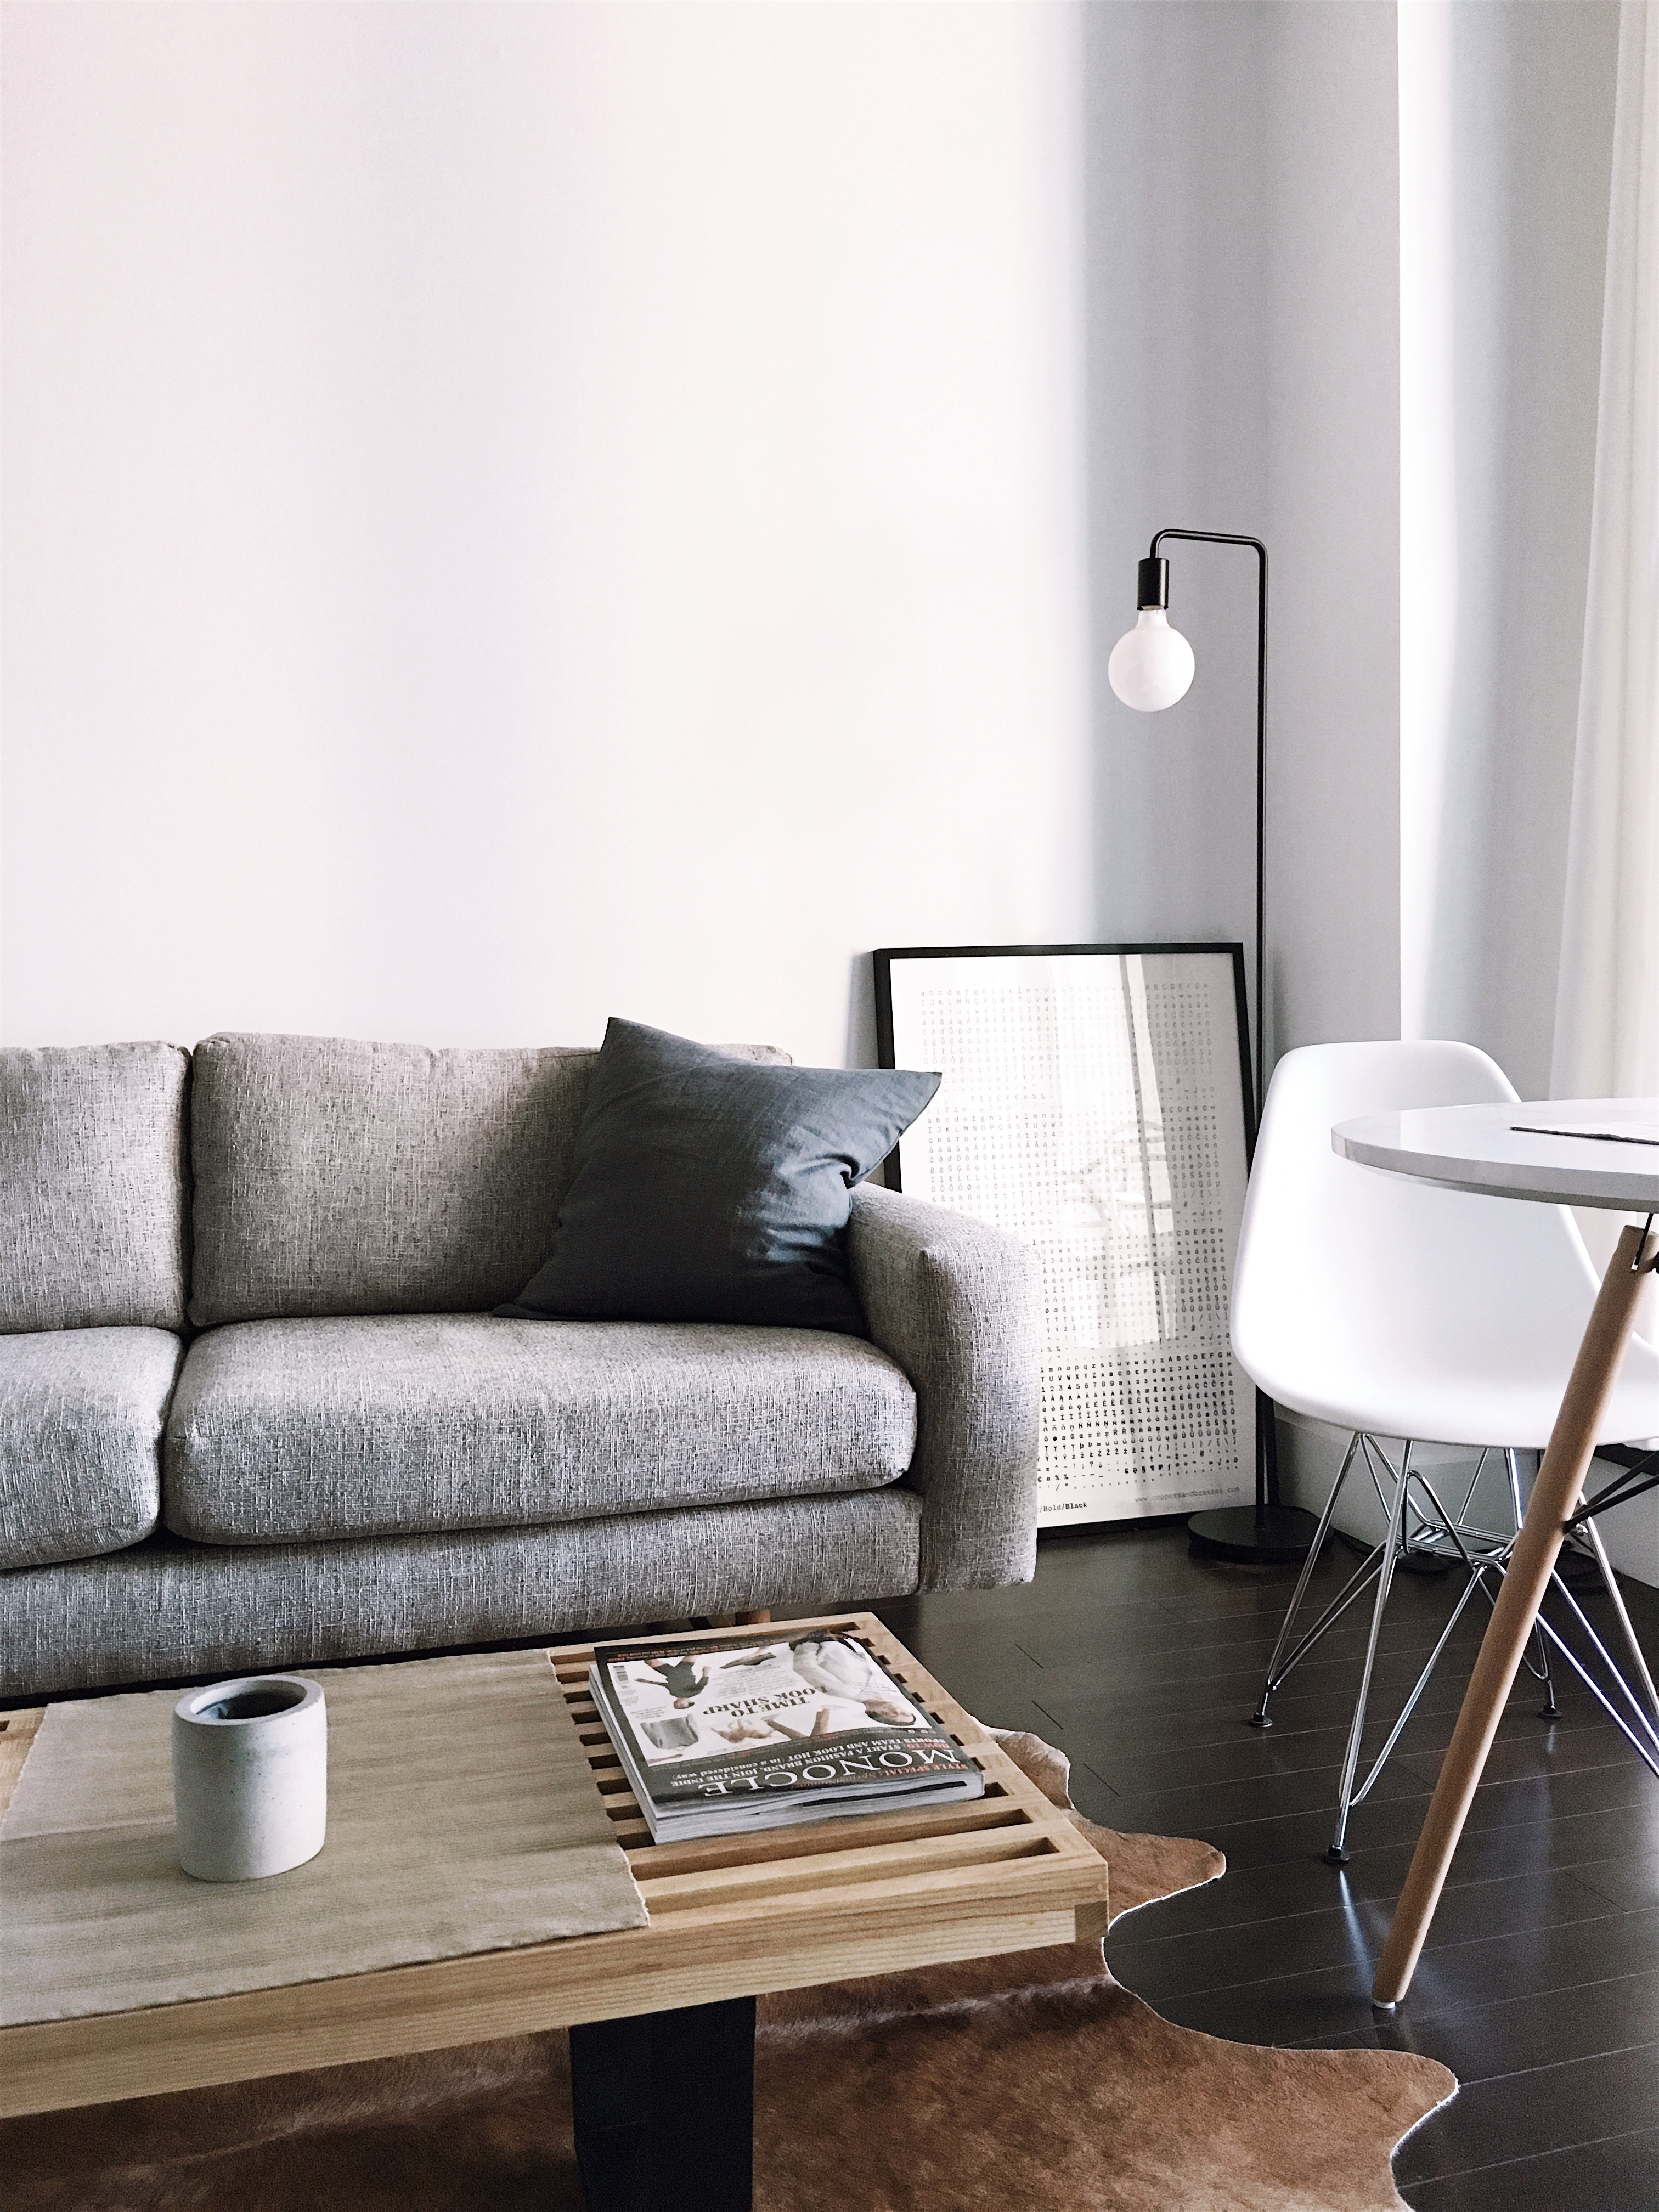 living room couch and 2 chairs style 2018 500 furniture pictures hd download free images on unsplash